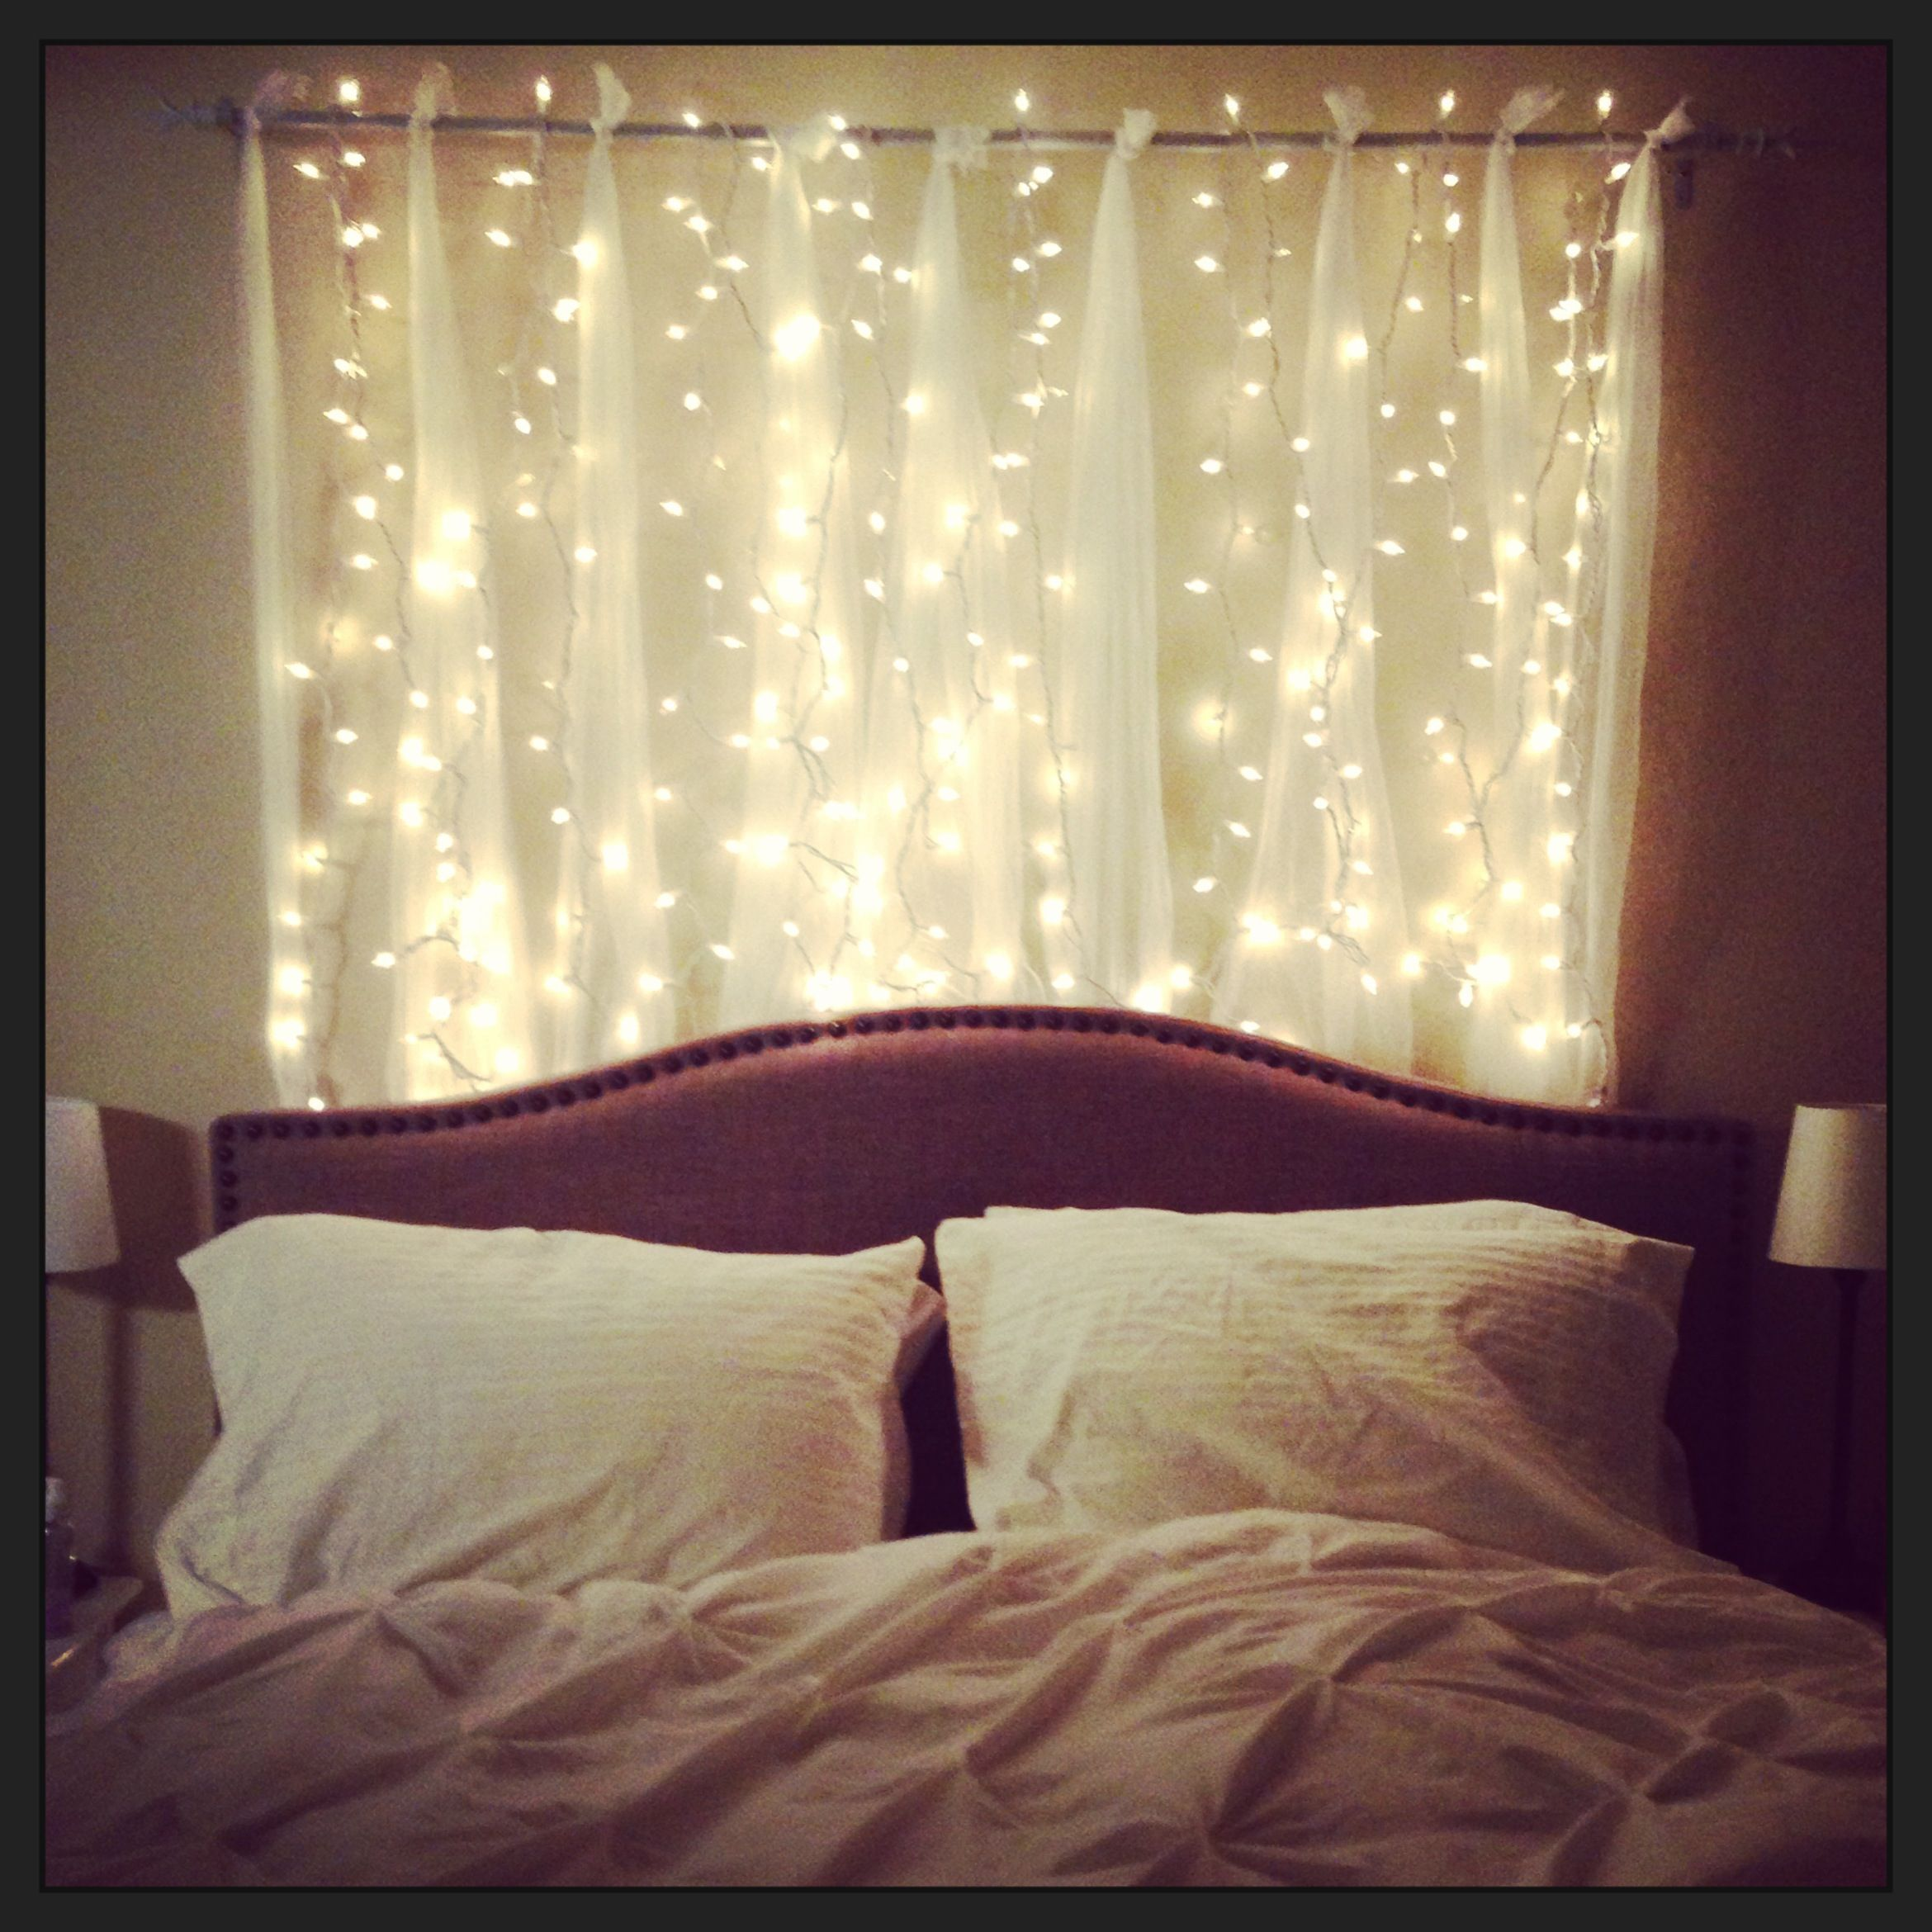 Exceptional String Lights Bedroom Ideas Part - 7: Headboard With Lovely Strings Of Lights Bedroom Decorations : A Lovely And  Beautiful Array Of Sparkling String Lights For Bedroom In Order To Pursue  The ...